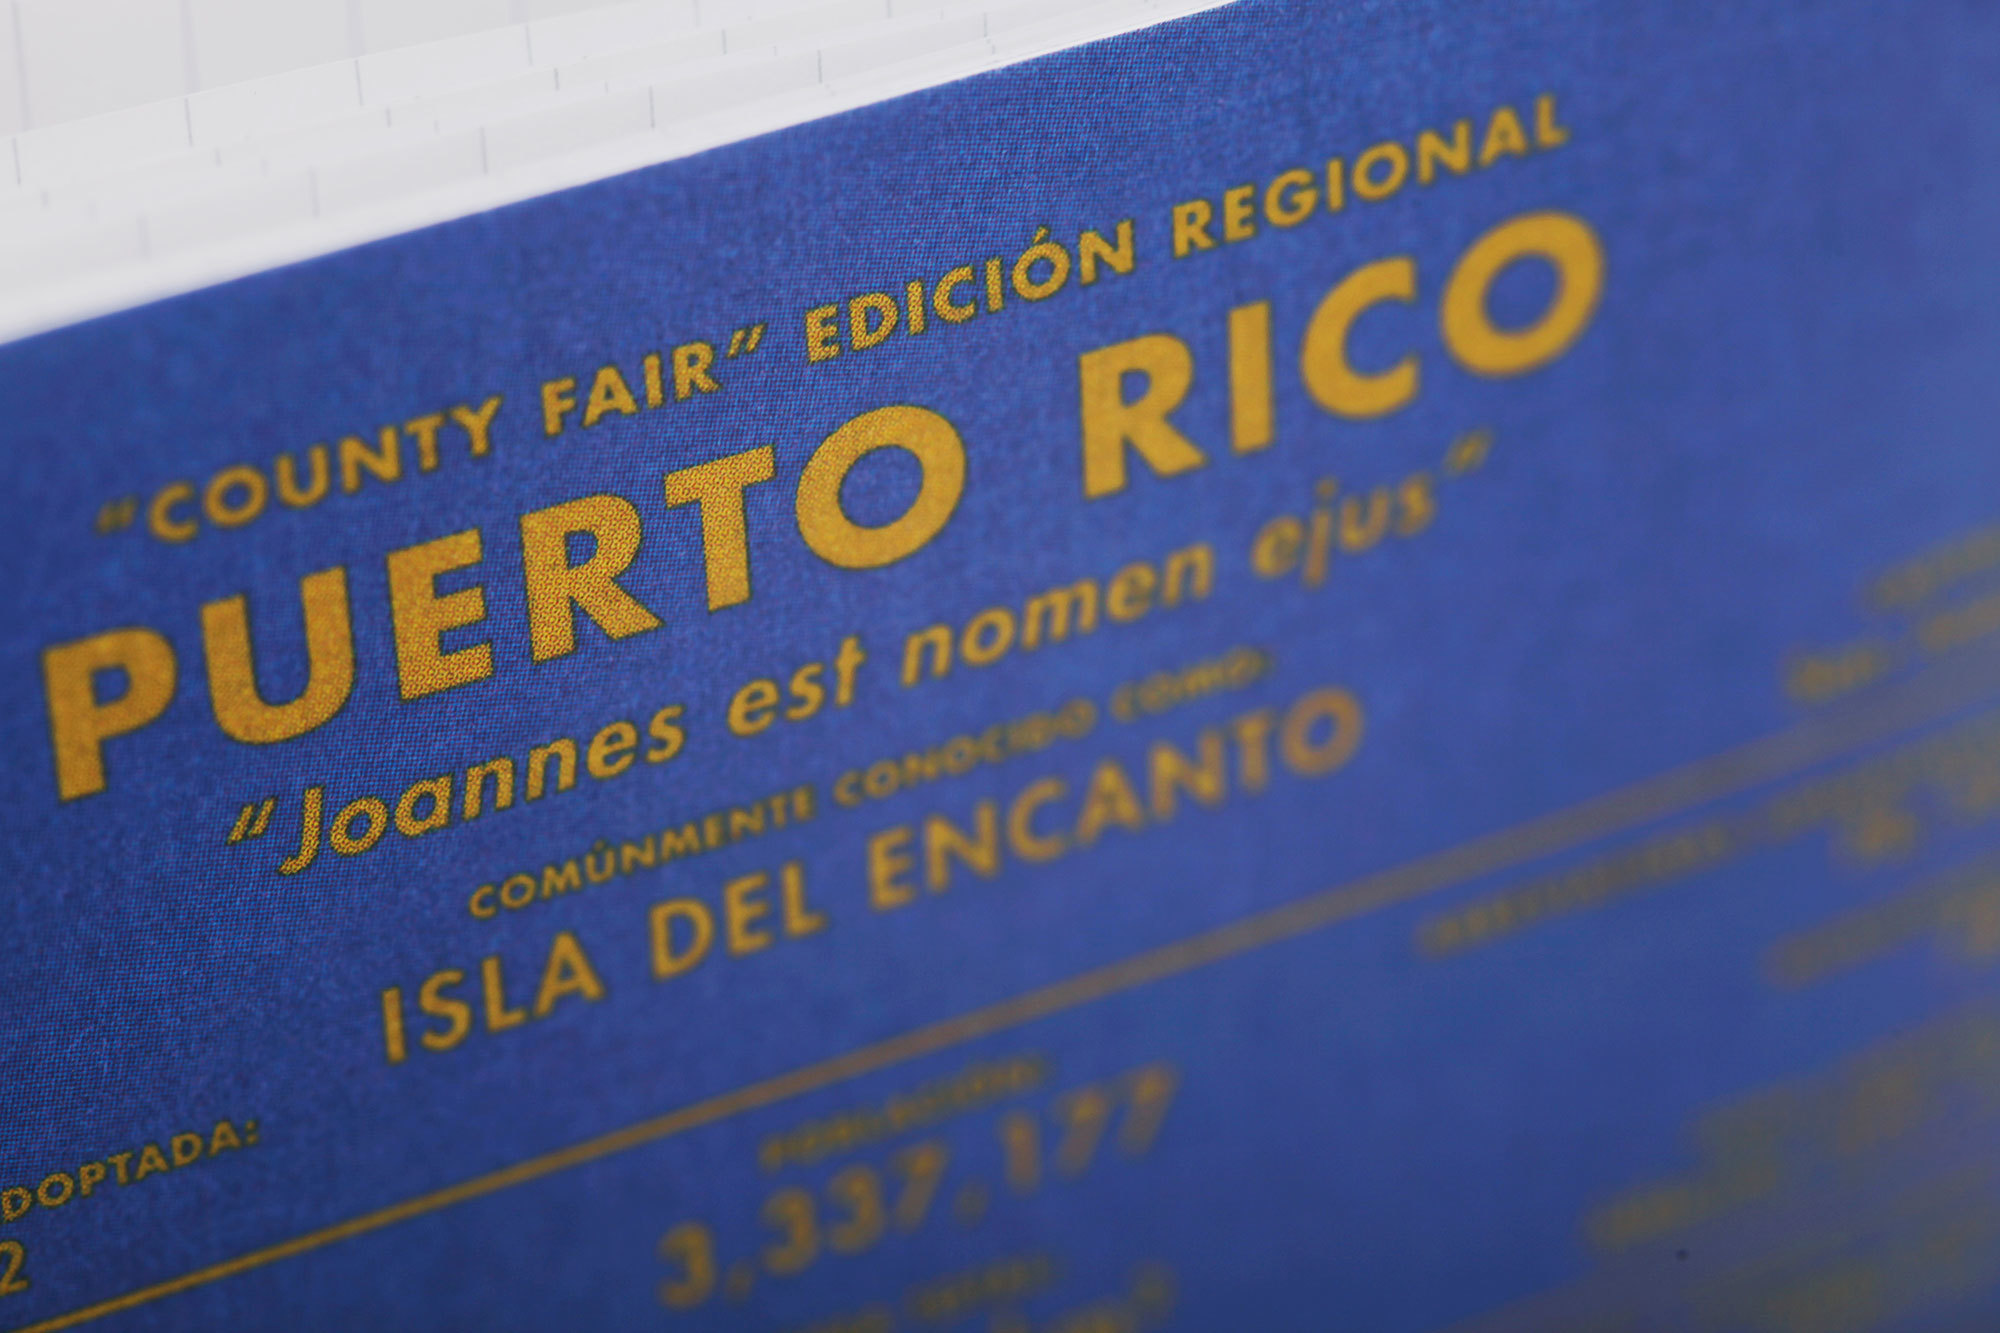 Field Notes, Puerto Rico, Noizhefte, blau,